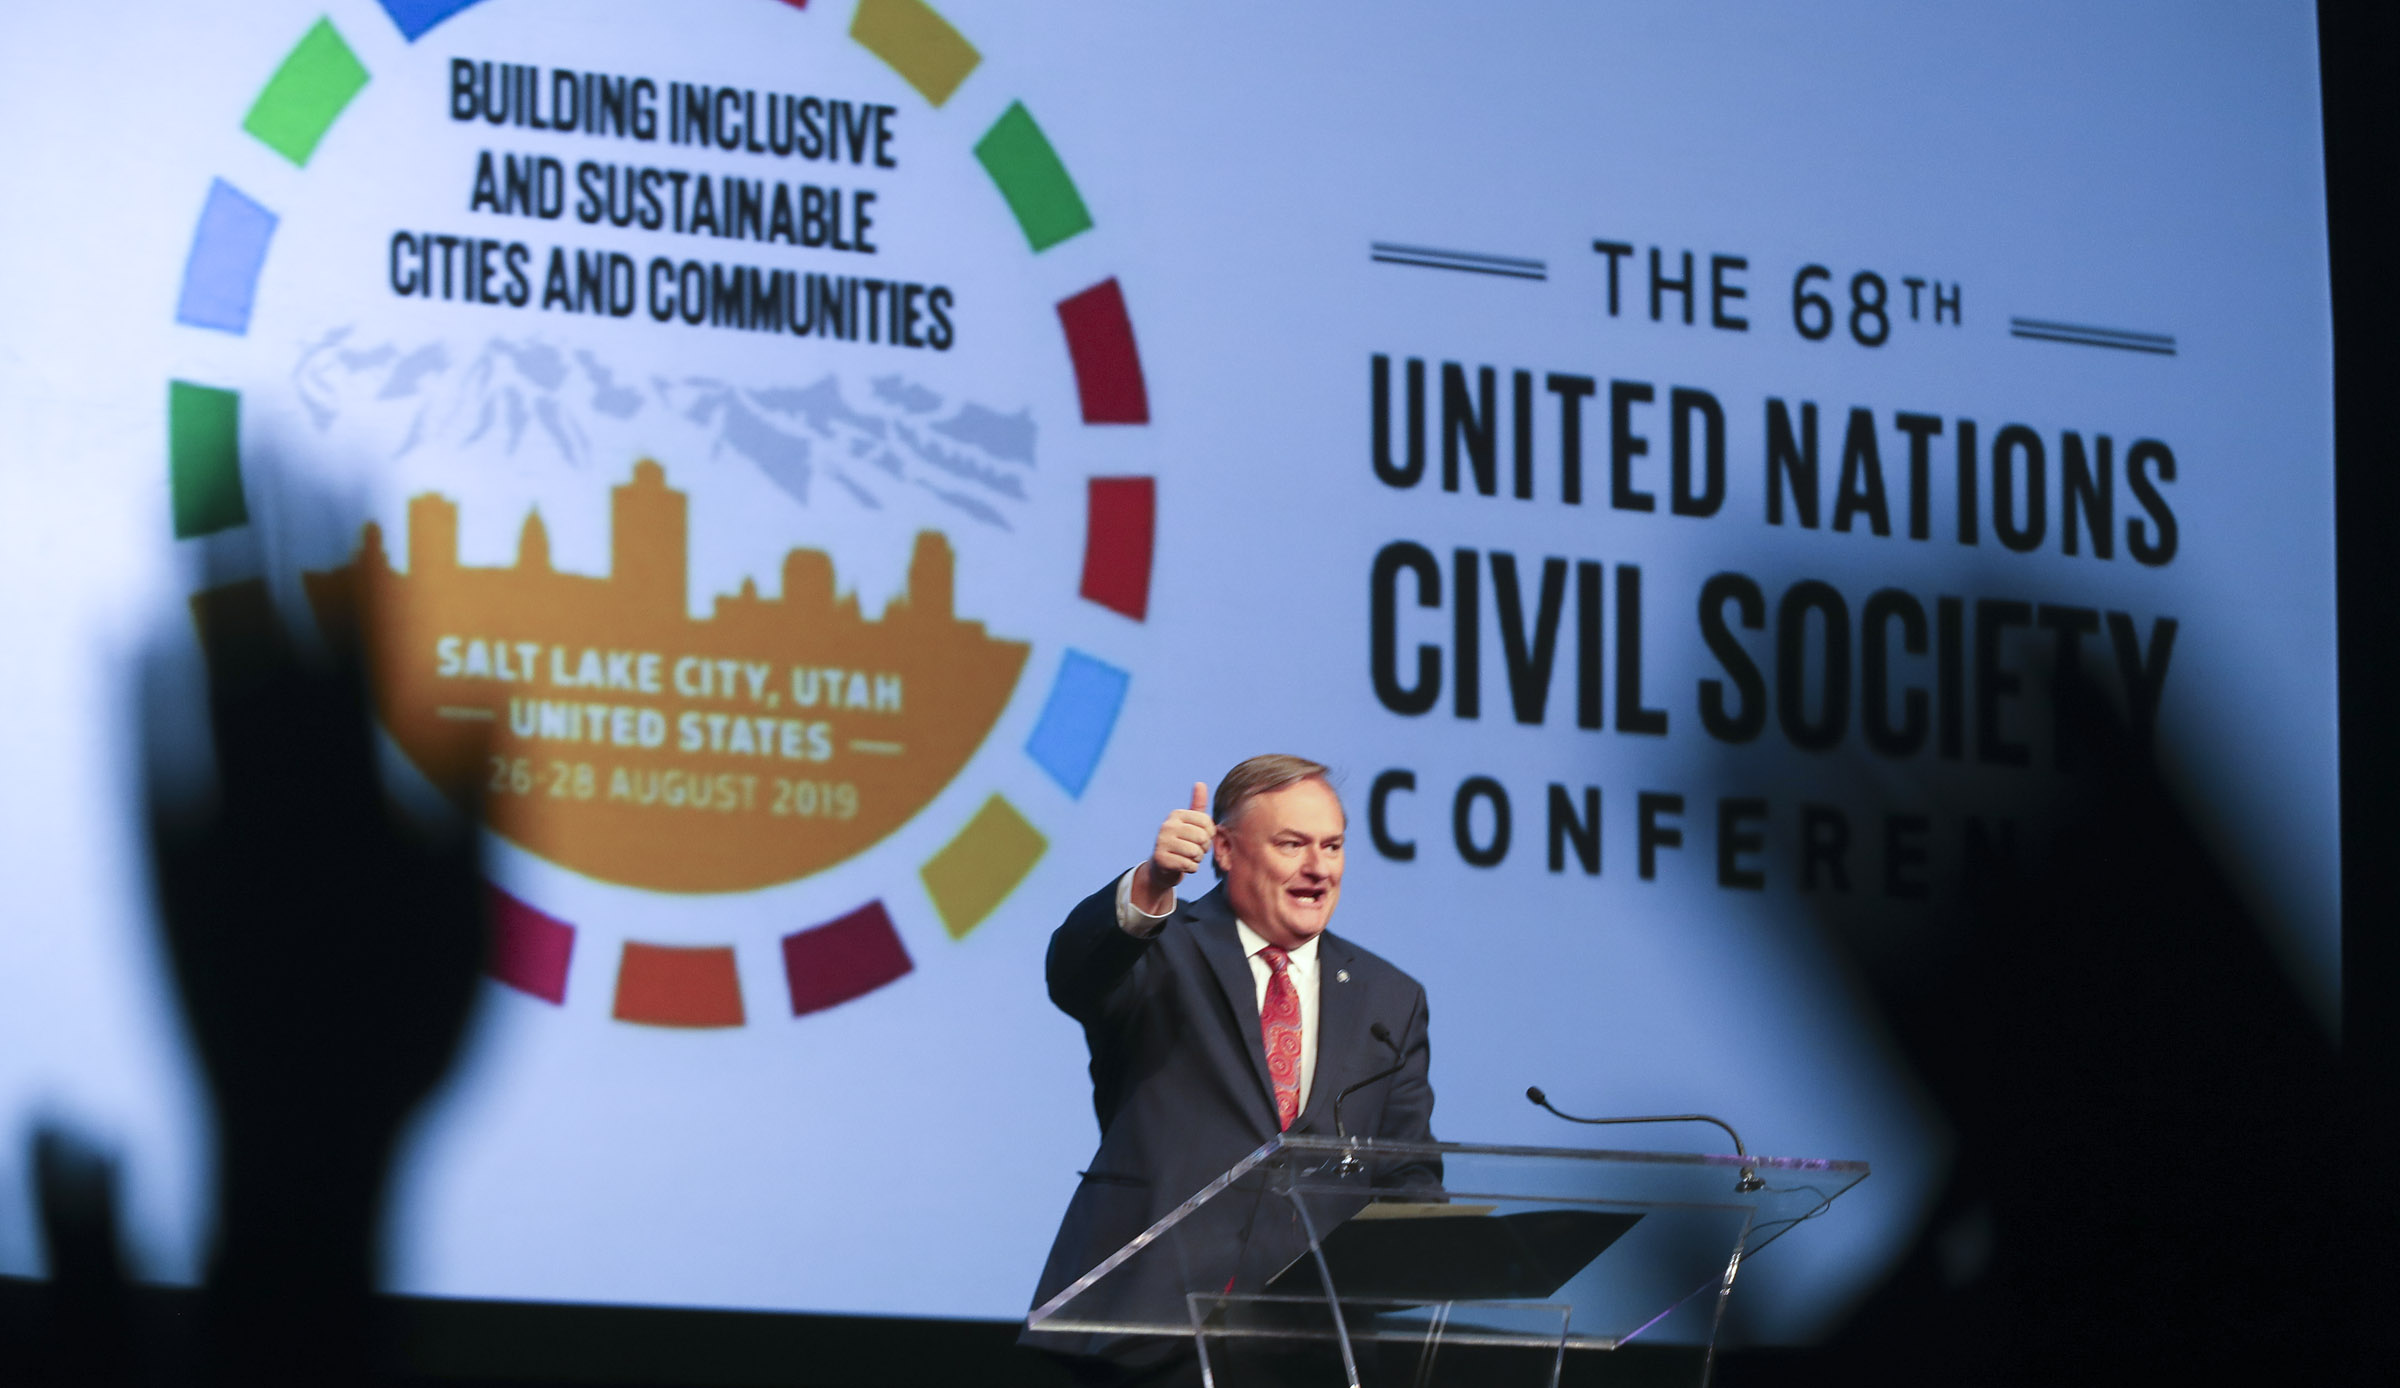 Michael Mower, deputy chief of staff for Gov. Gary Herbert, speaks during the 68th United Nations Civil Society Conference at the Salt Palace Convention Center on Monday, Aug. 26, 2019.